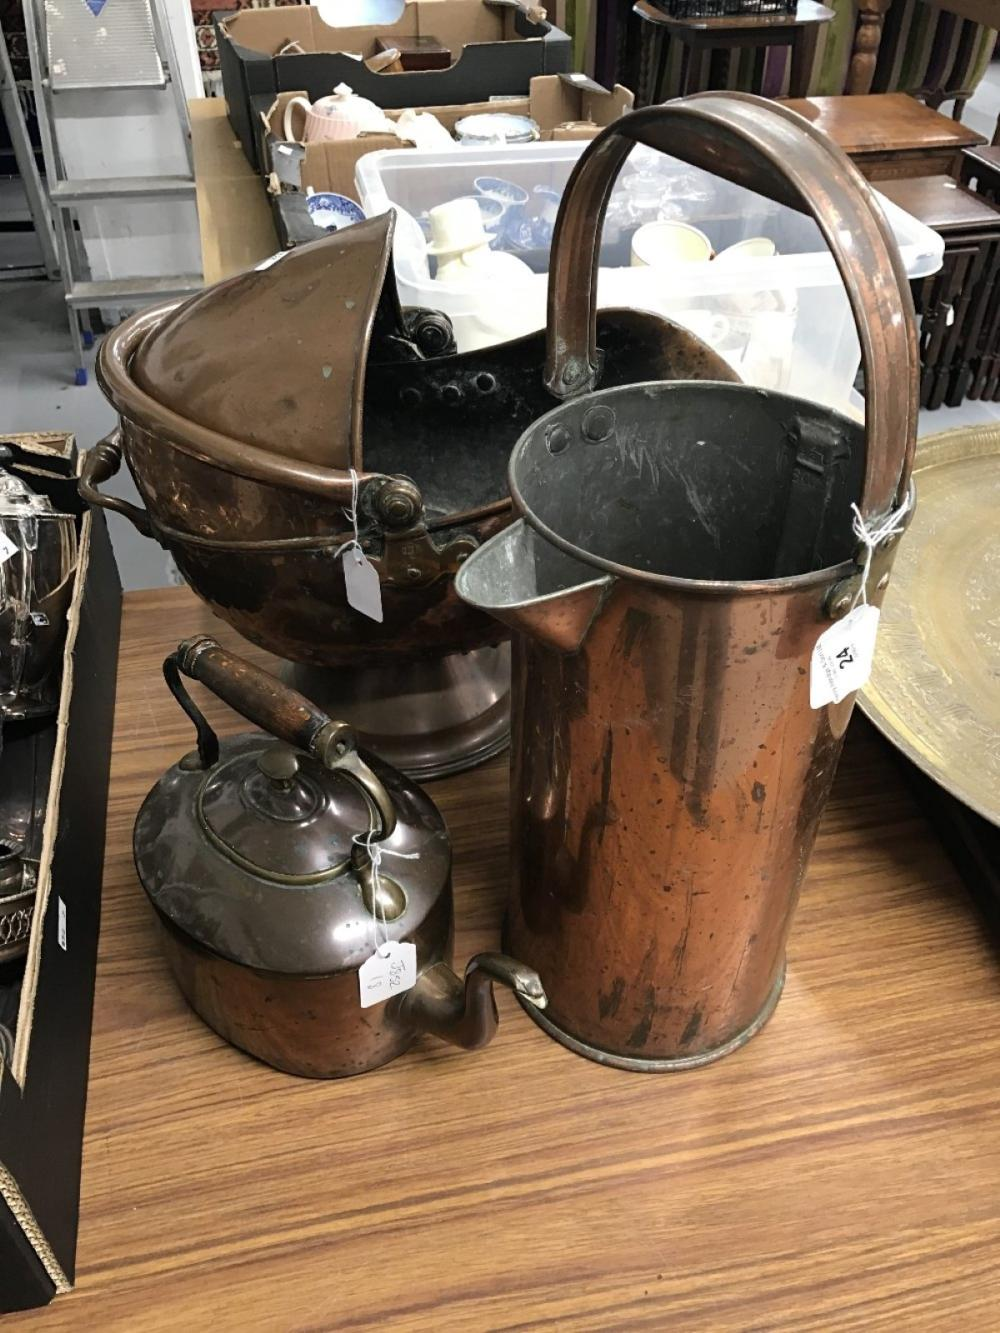 Metal Ware: 19th cent. Copper coal scuttle, large two handled water jack and kettle.